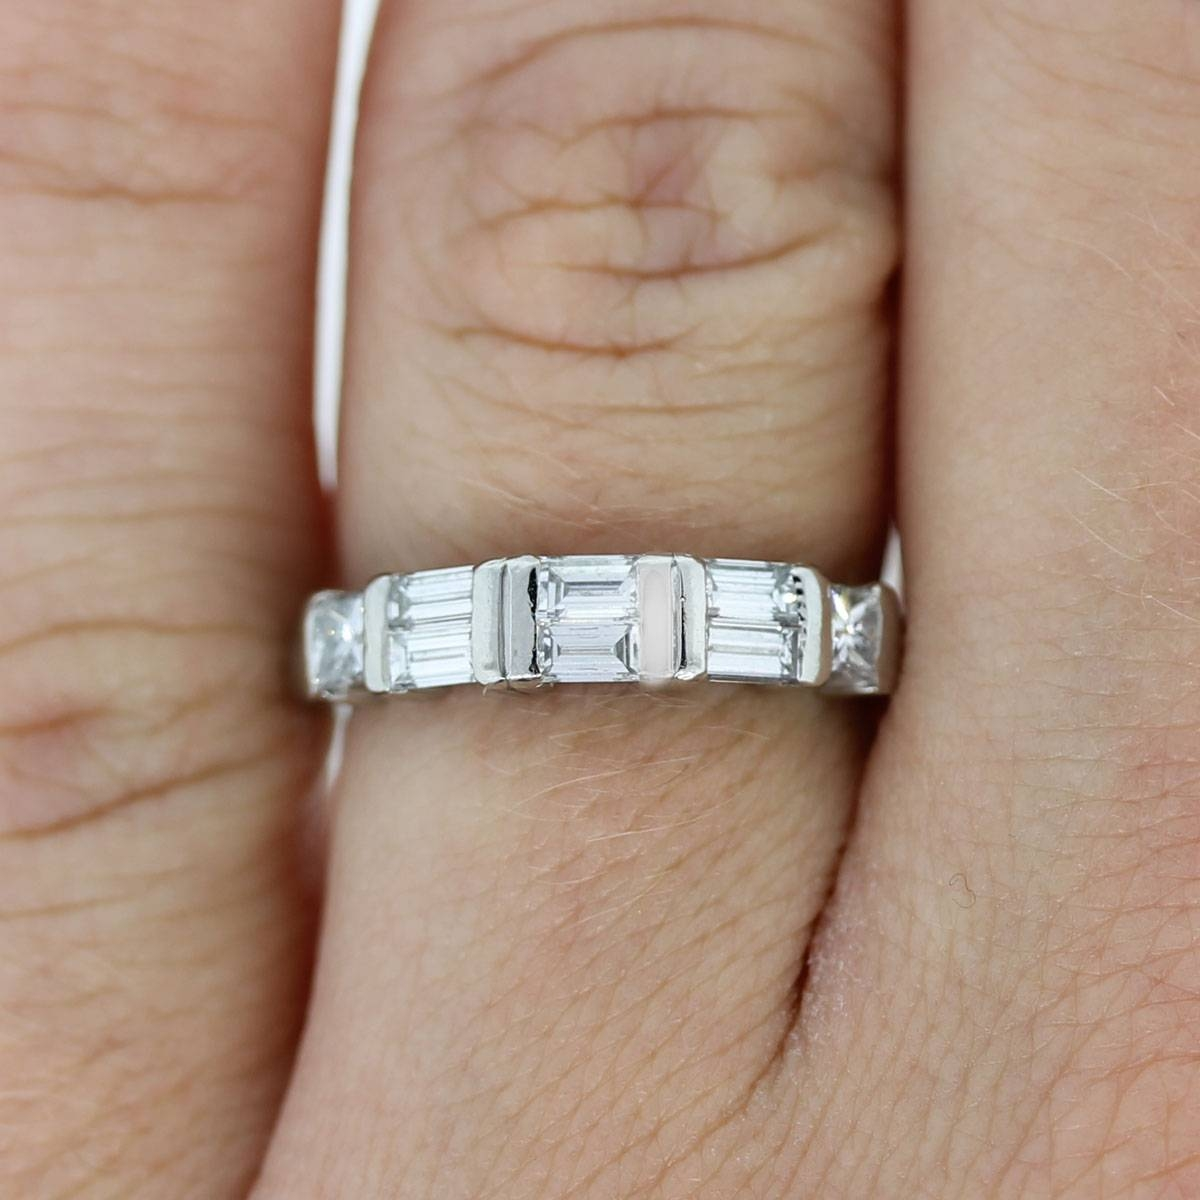 Wedding Rings : Baguette Wedding Band Rings Big Engagement Rings With Regard To Baguette Wedding Bands (View 13 of 15)